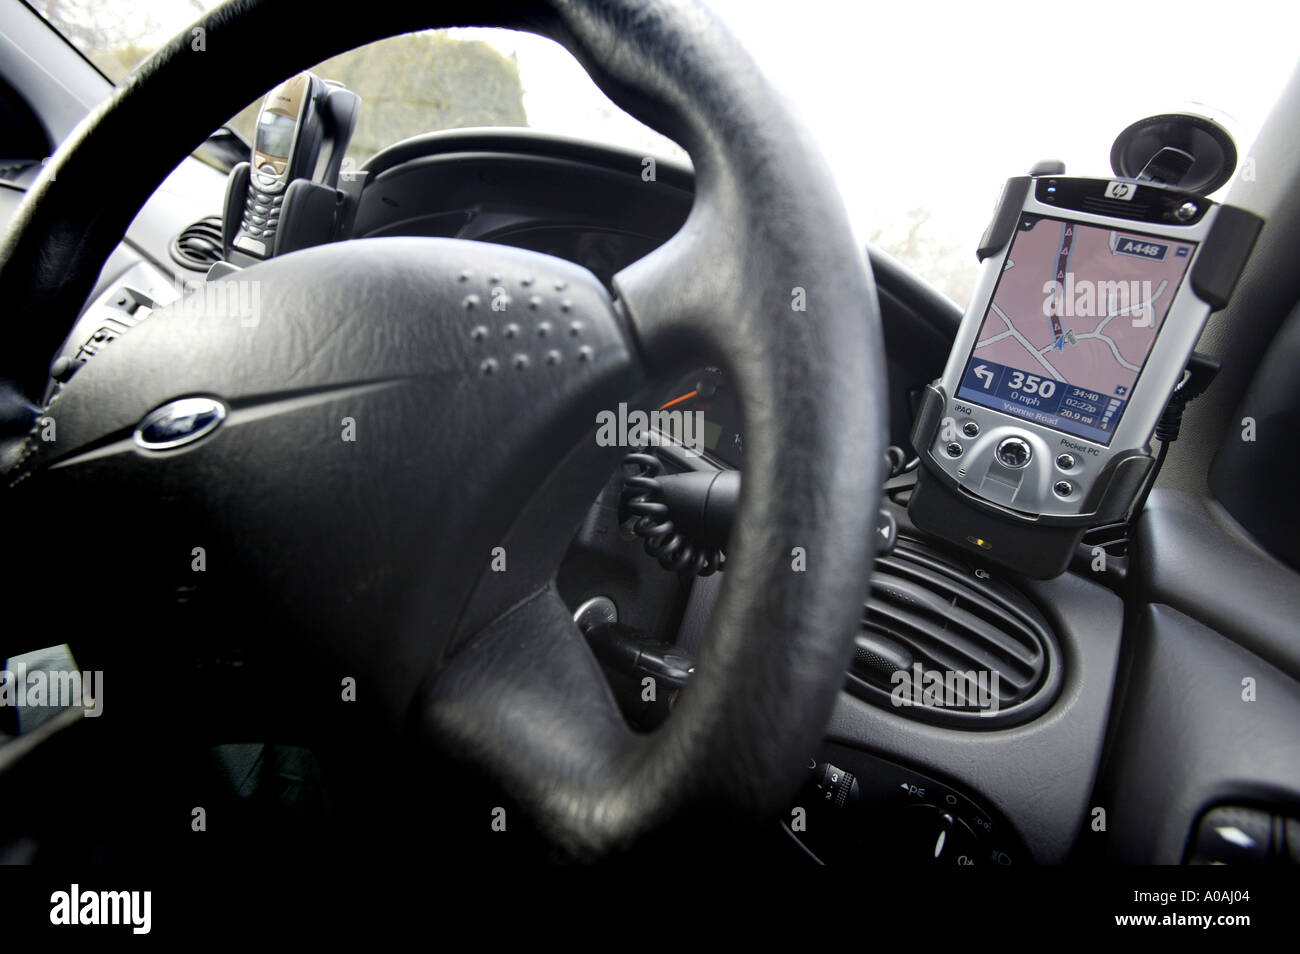 A Pocket PC GPS system mounted in a car - Stock Image